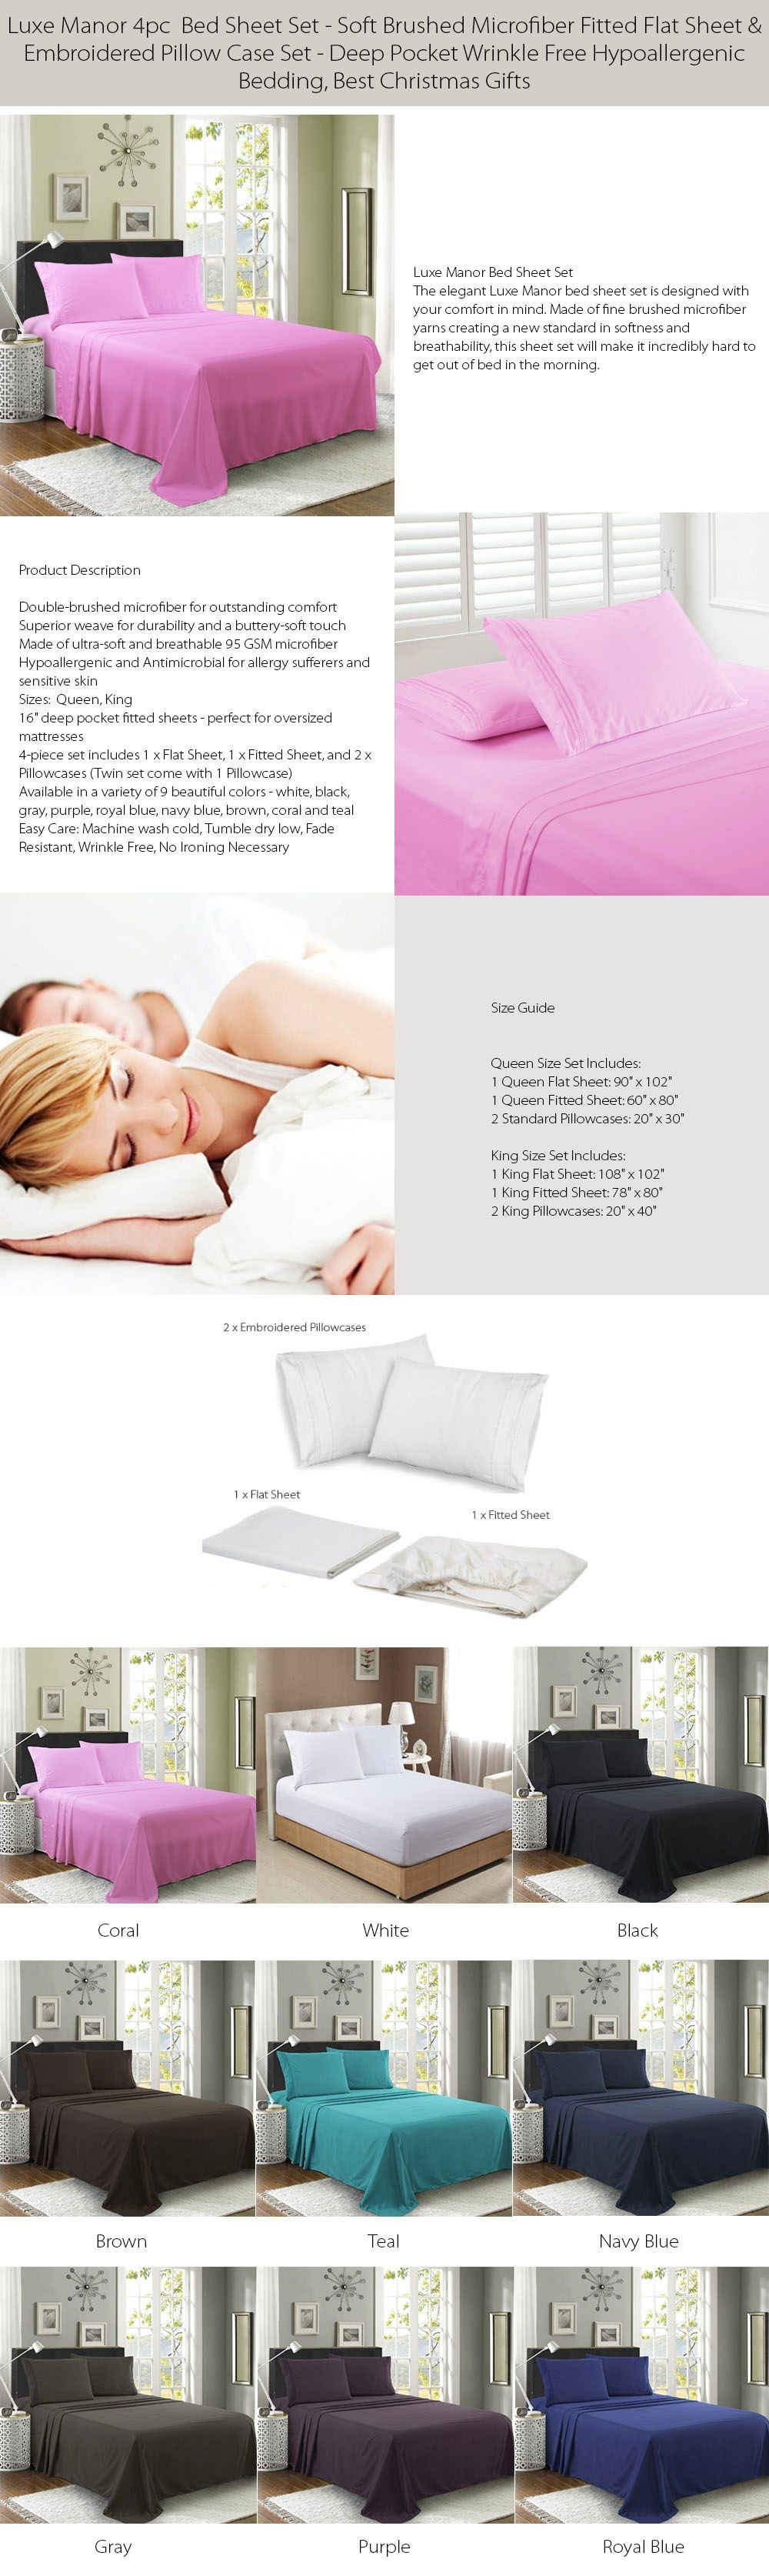 Luxe Manor 4pc Bed Sheet Set Soft Brushed Microfiber Fitted Flat Sheet & Embroidered Pillow Case Set